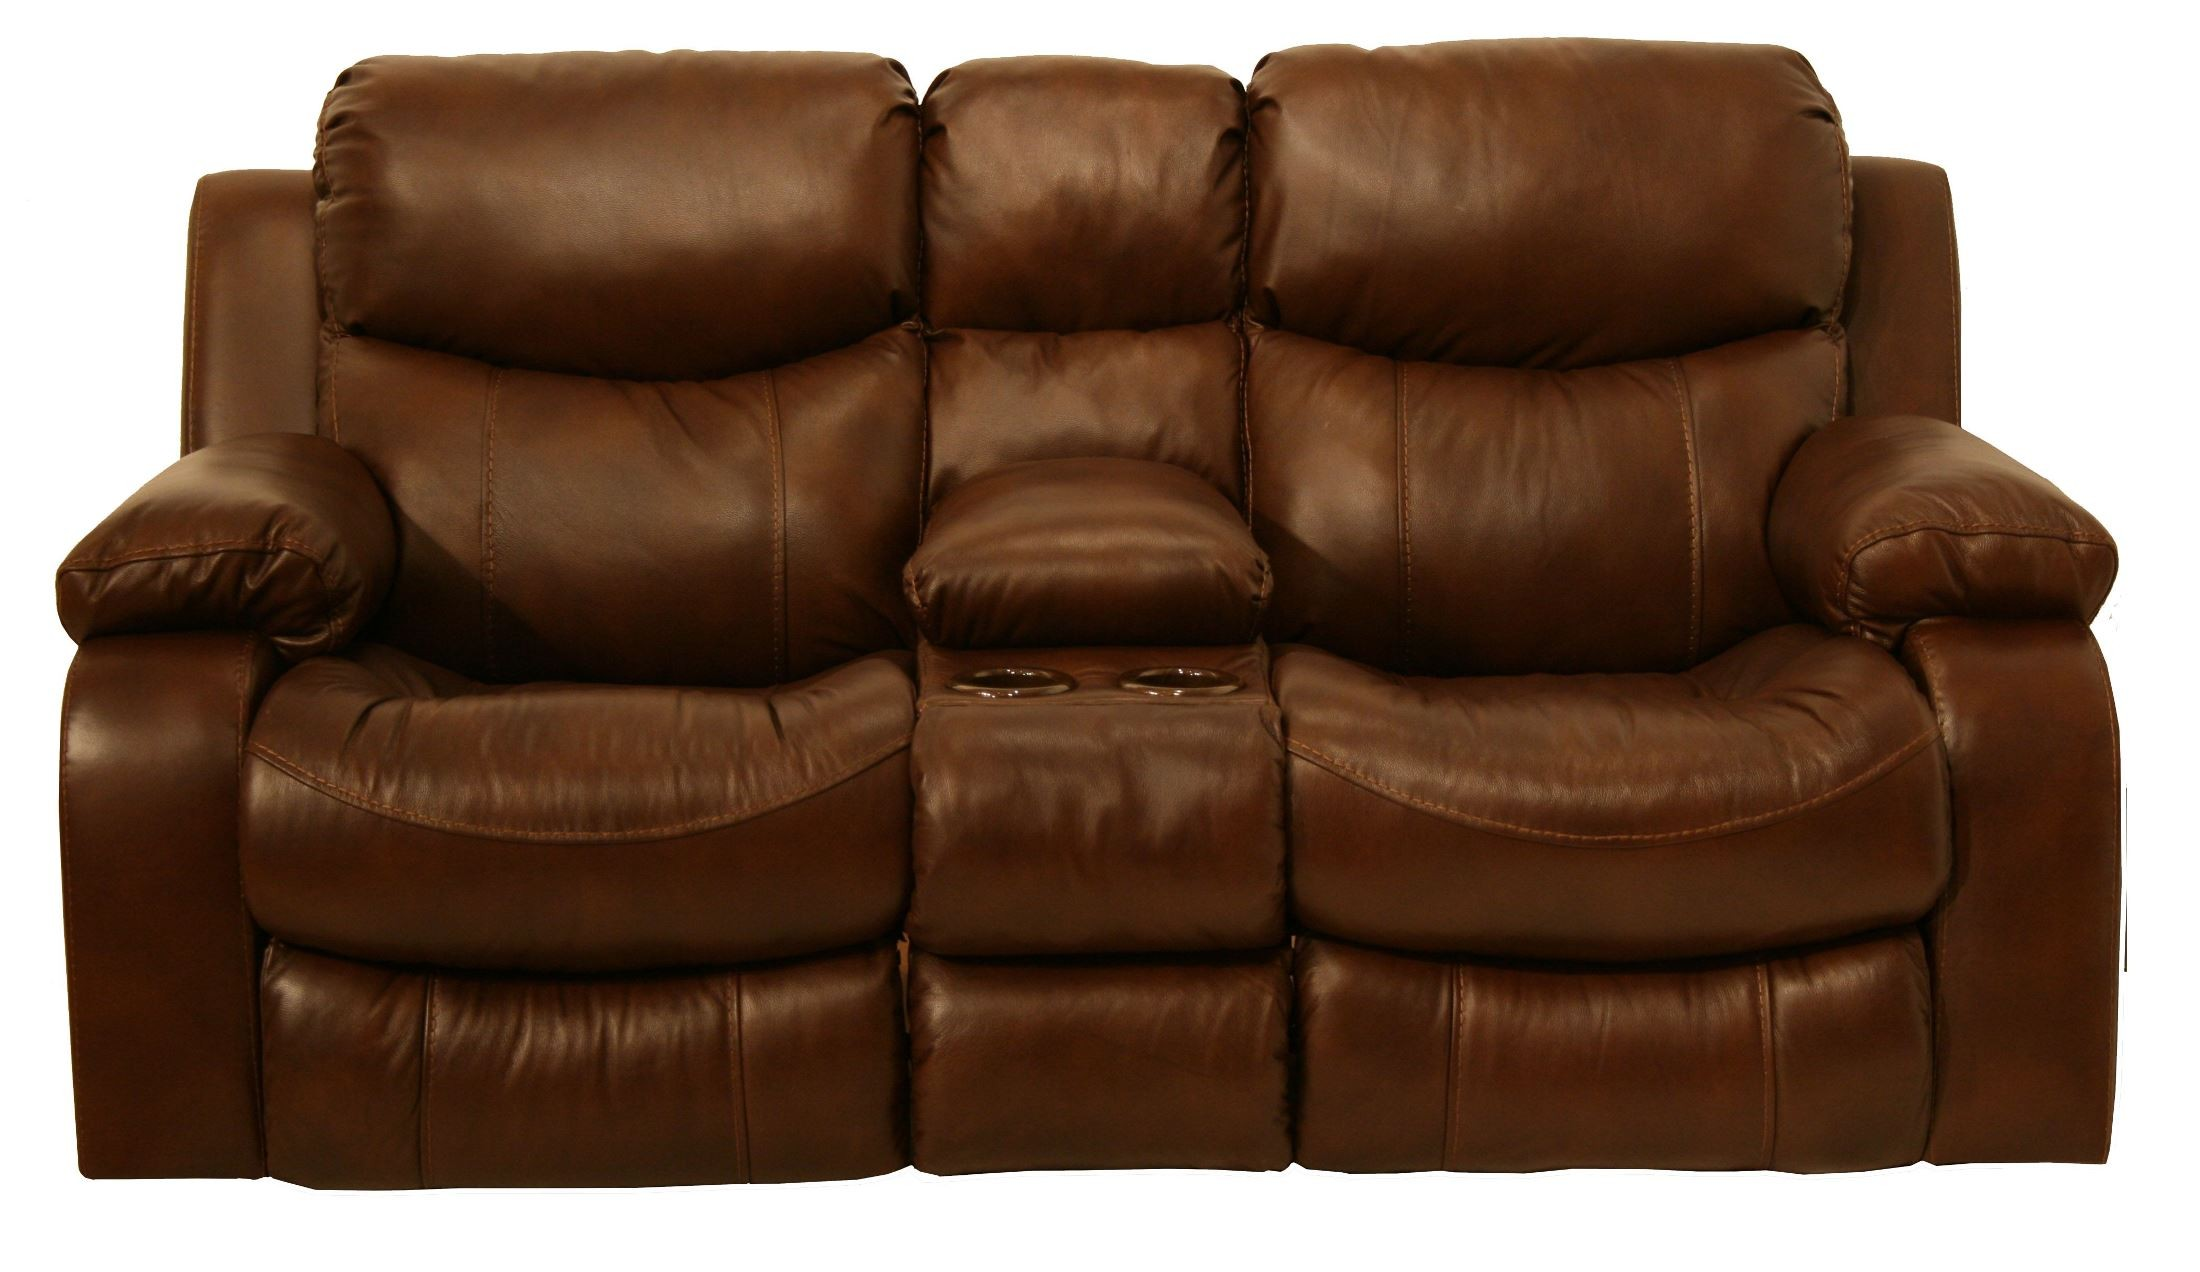 Dallas Tobacco Power Reclining Loveseat With Console From Catnapper 64959100000000000